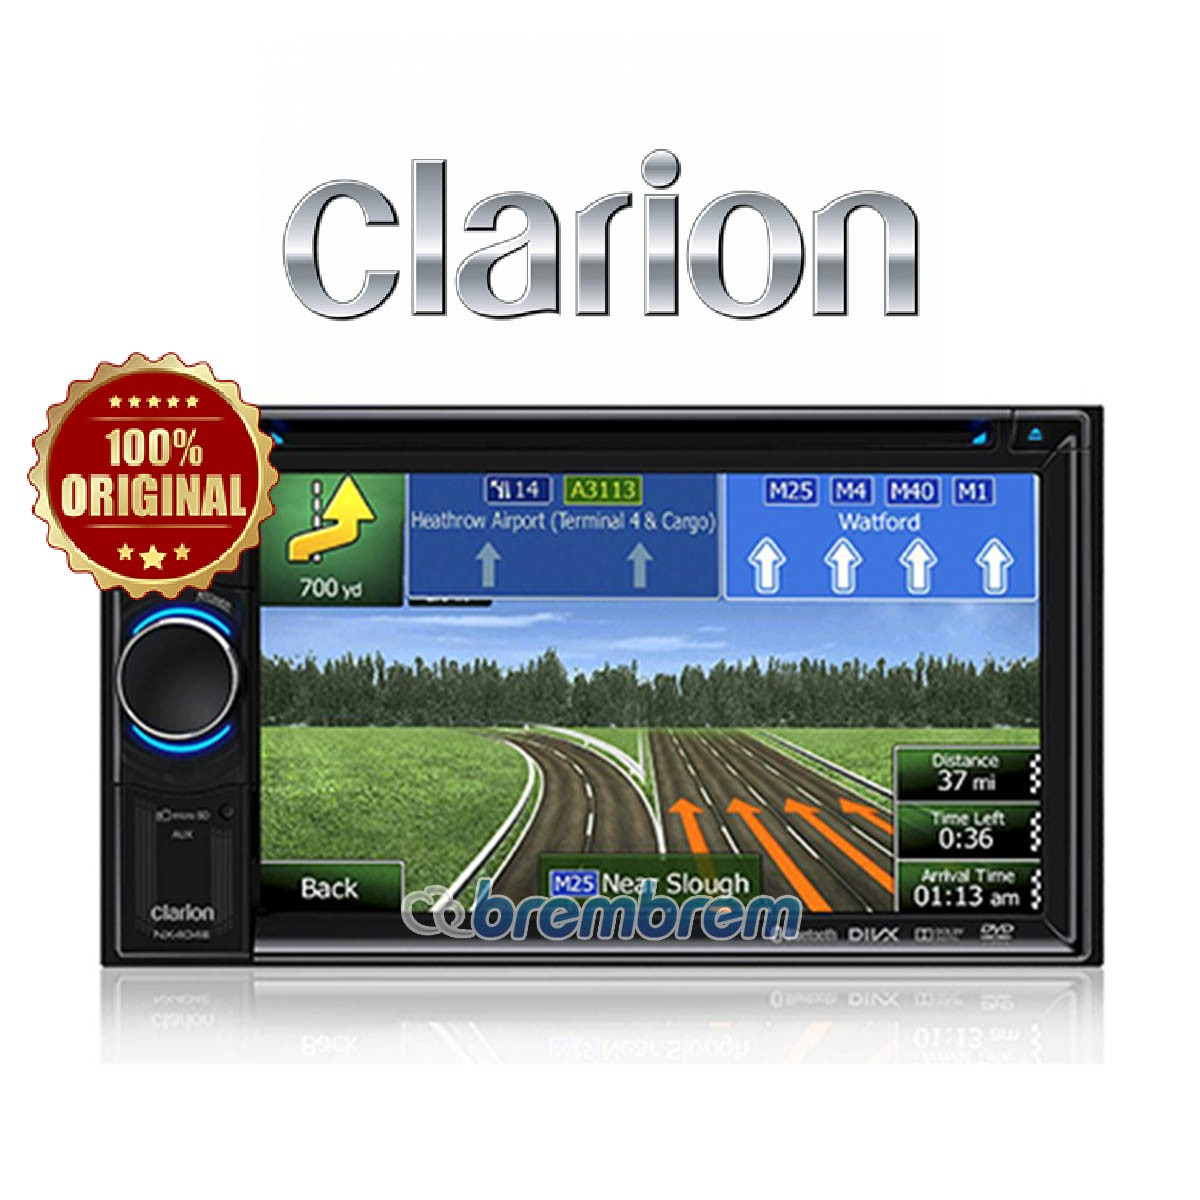 CLARION NX 403 A (GPS NAVIGASI) - HEAD UNIT DOUBLE DIN